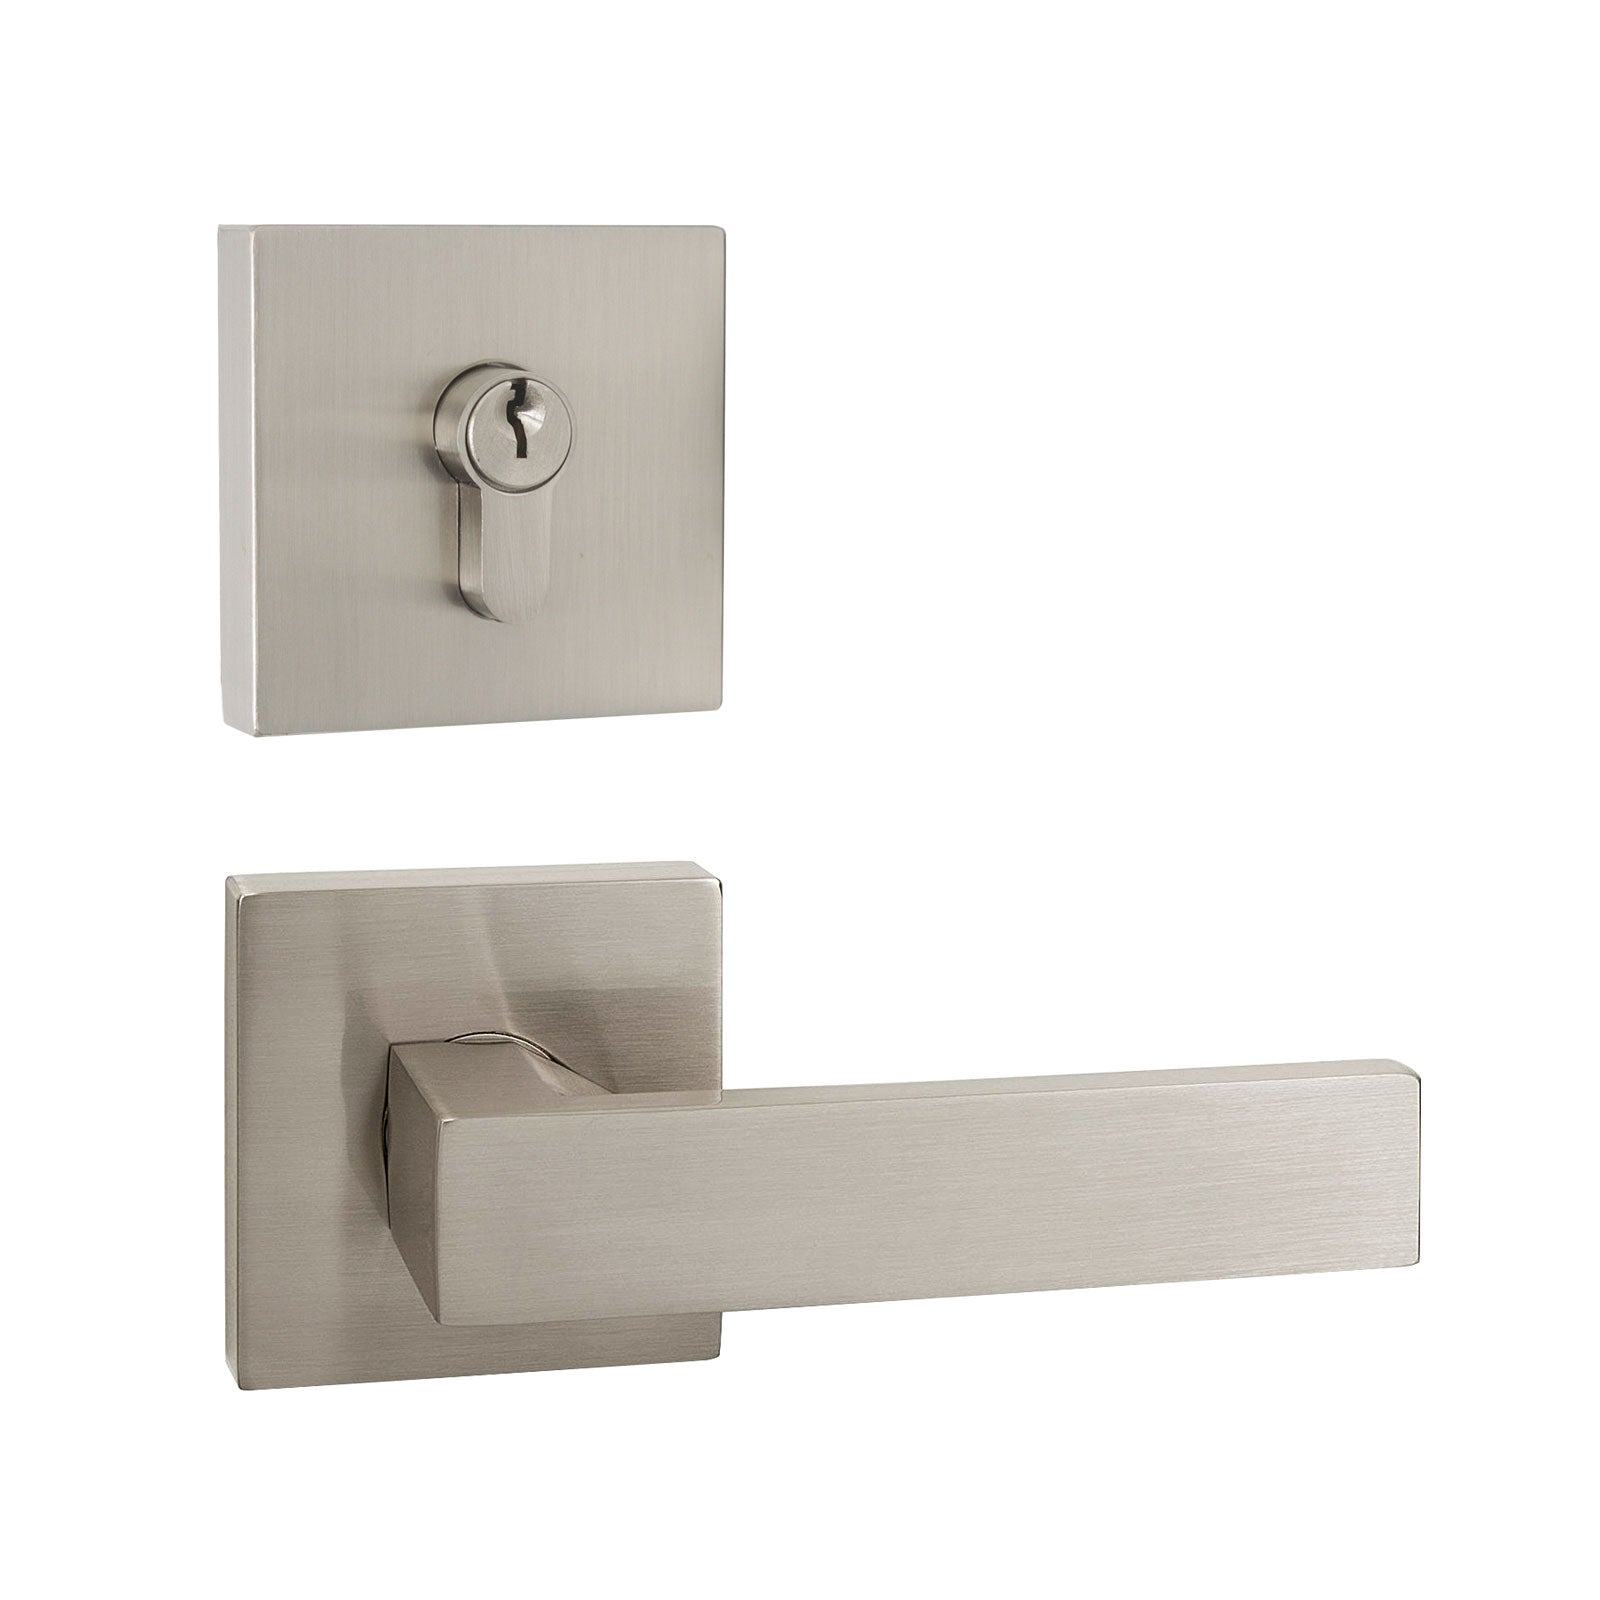 Front Door Levers and Double Cylinder Deadbolts Lock Set (Keyed Alike), Satin Nickel Finish